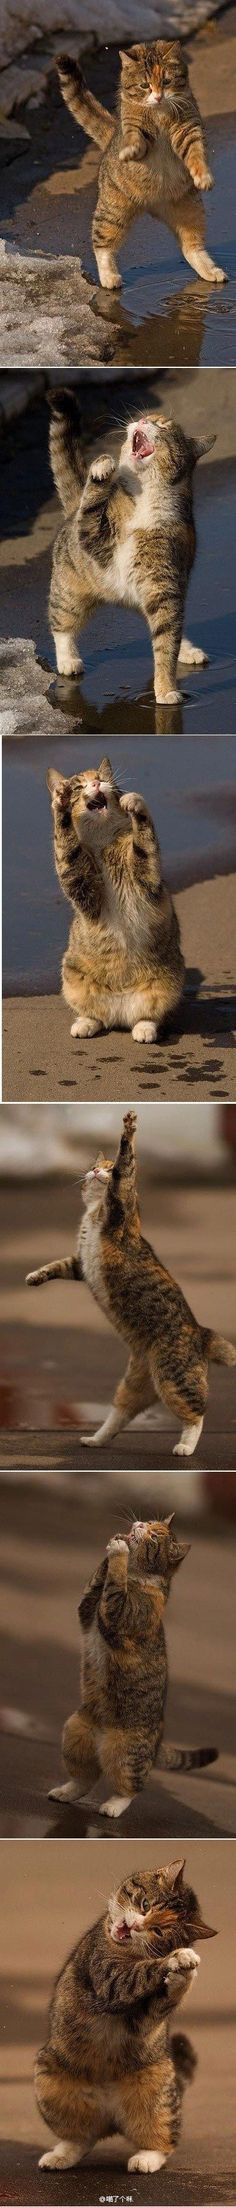 cats will be.......cats!